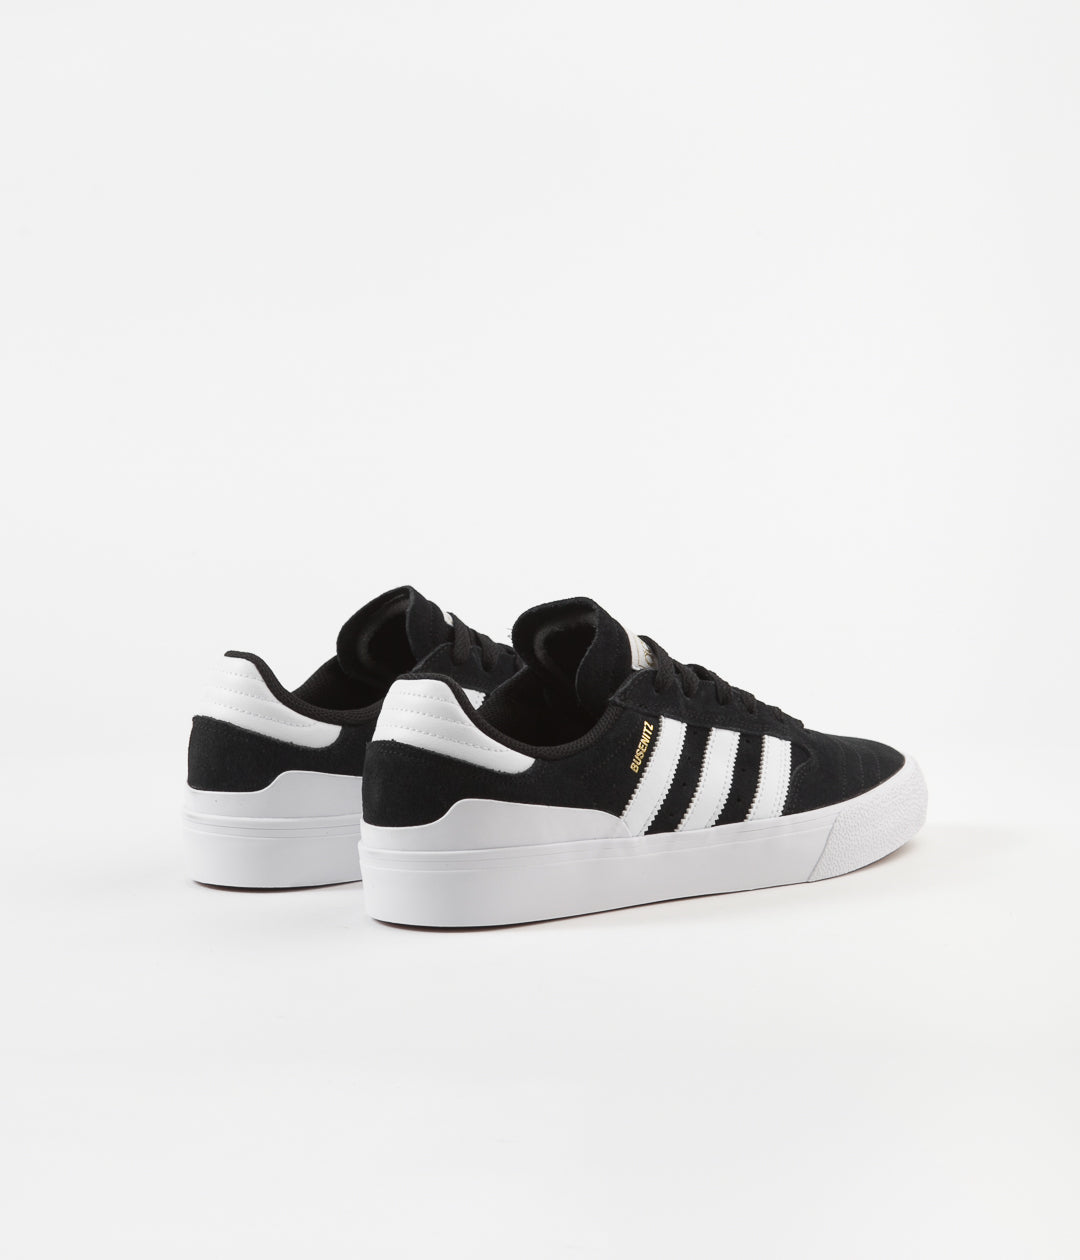 Adidas Busenitz Vulc II Shoes - Core Black / White / Gum4